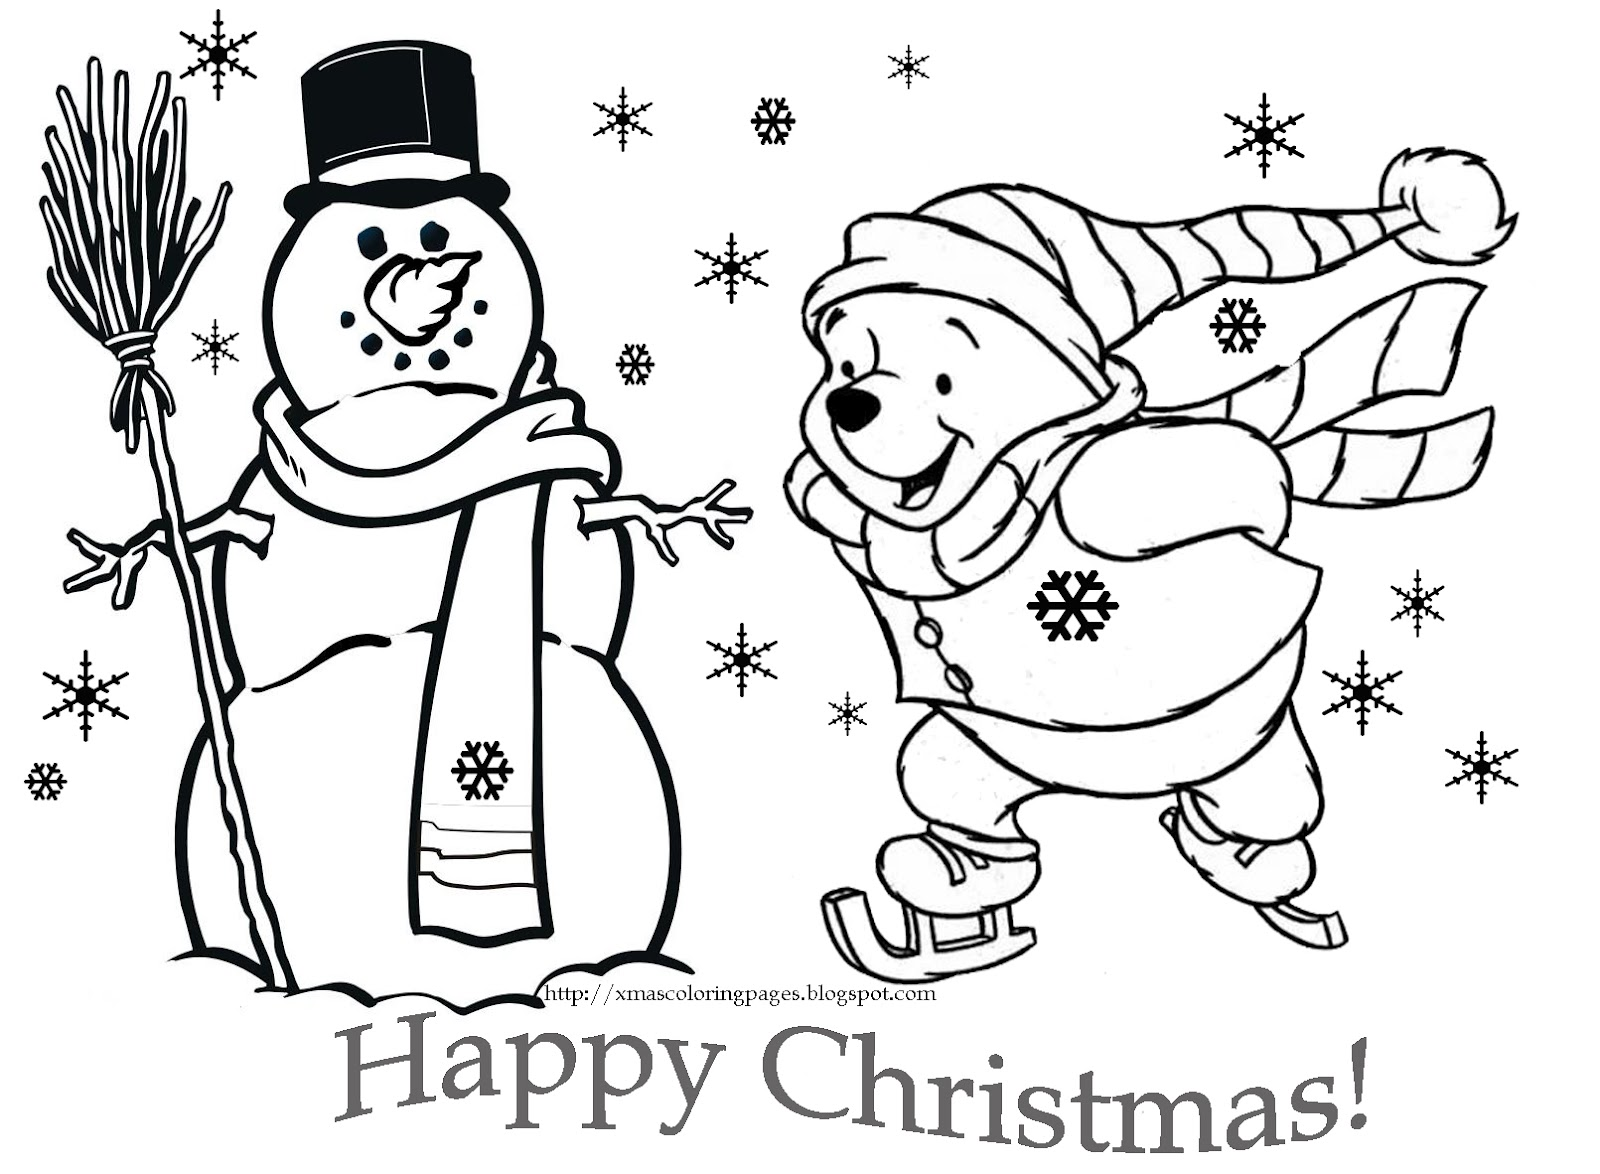 Free Disney Christmas Coloring Pages With DISNEY COLORING PAGES